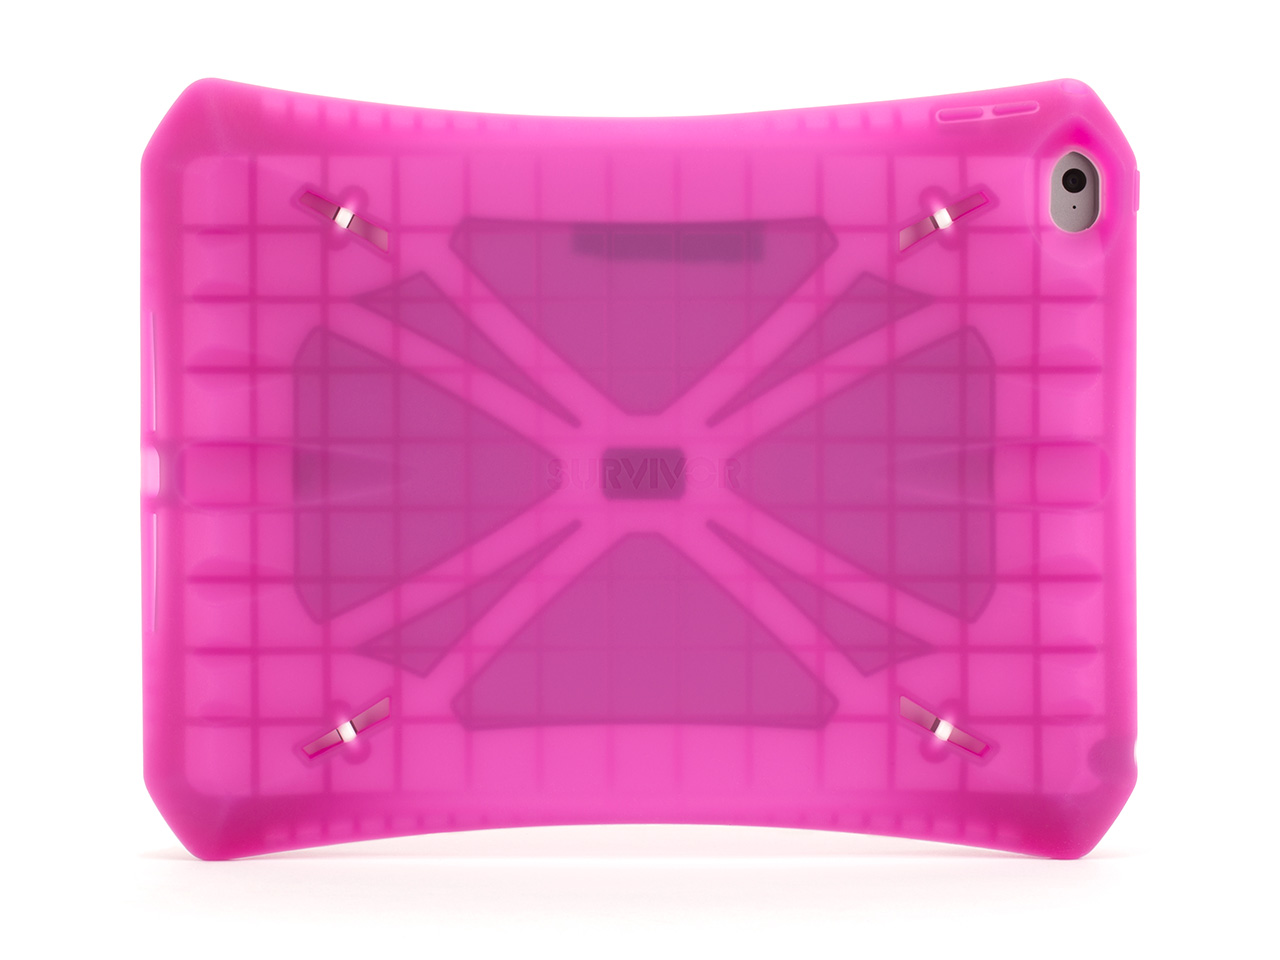 gaming cases for ipad air 2